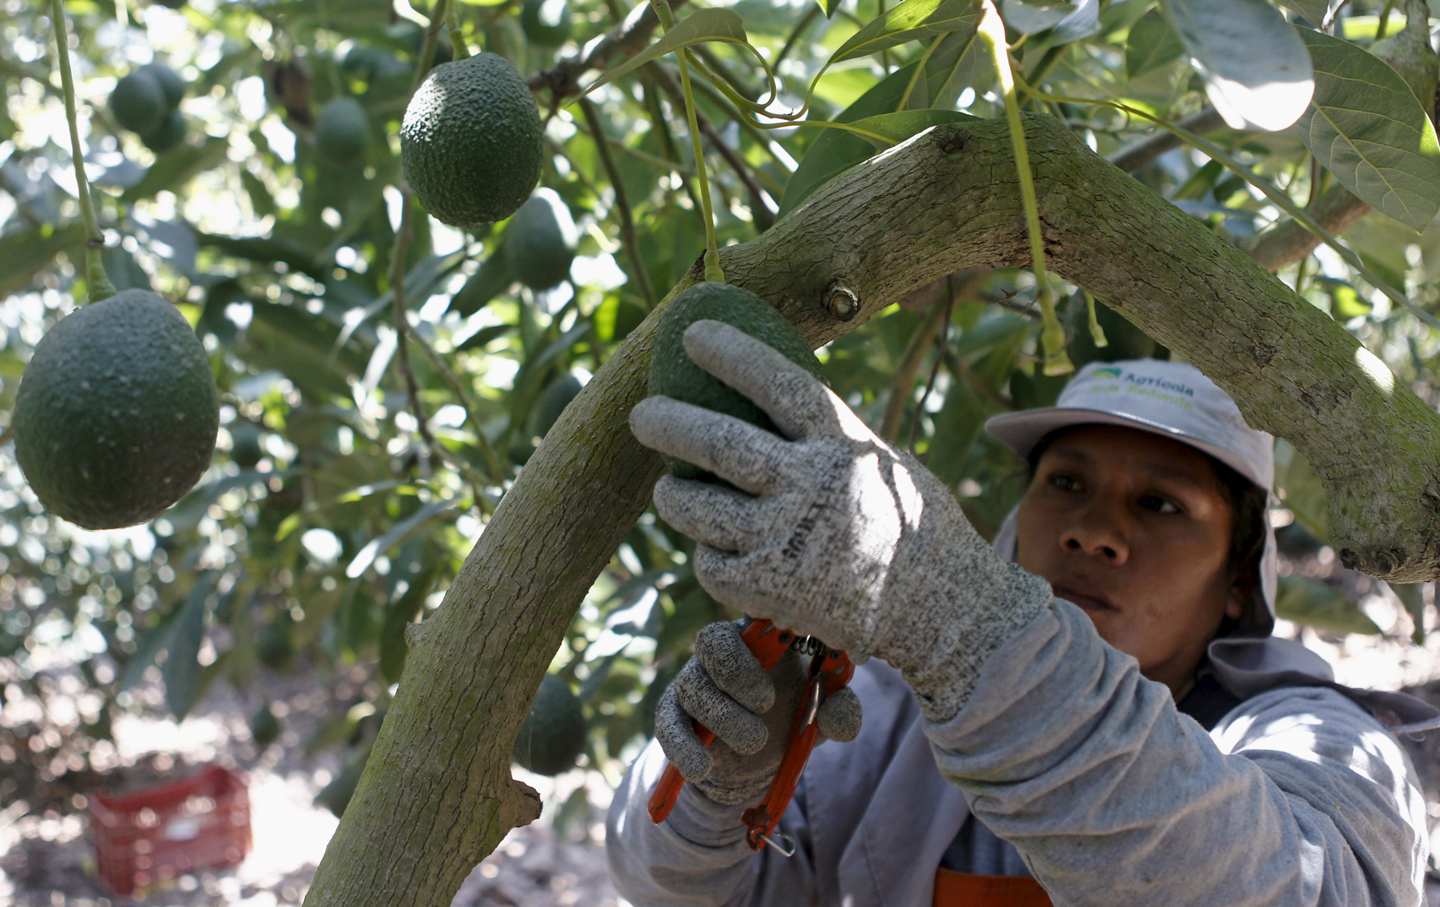 A farm worker picks avocados from Hoja Redonda plantation in Chincha, Peru, September 3, 2015.